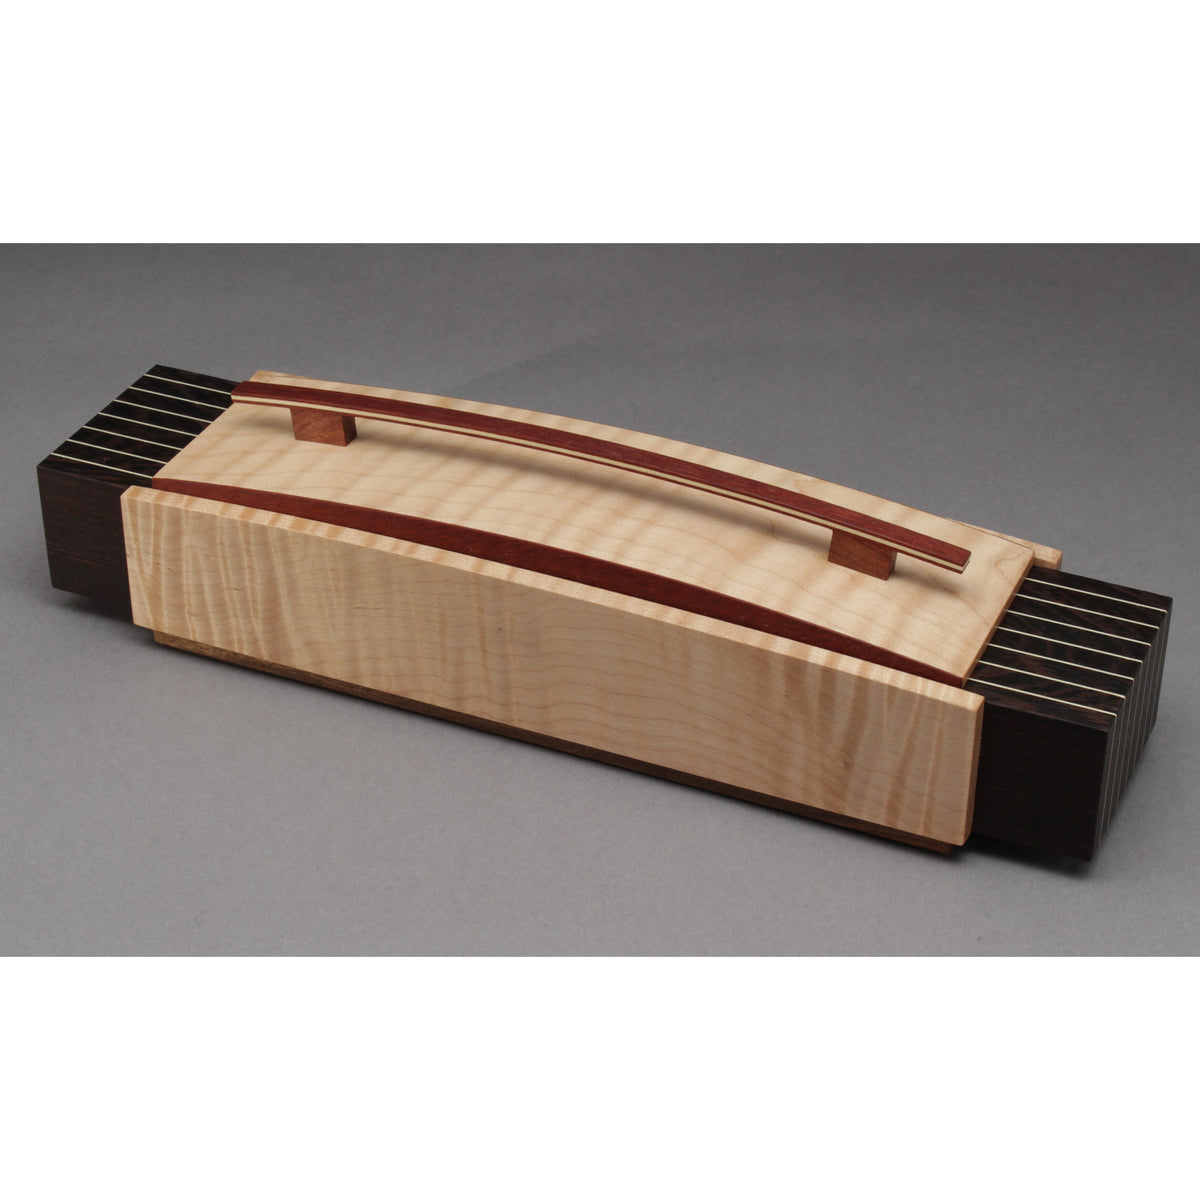 Exotic Woods Box- Gentle Arc | Getty Store